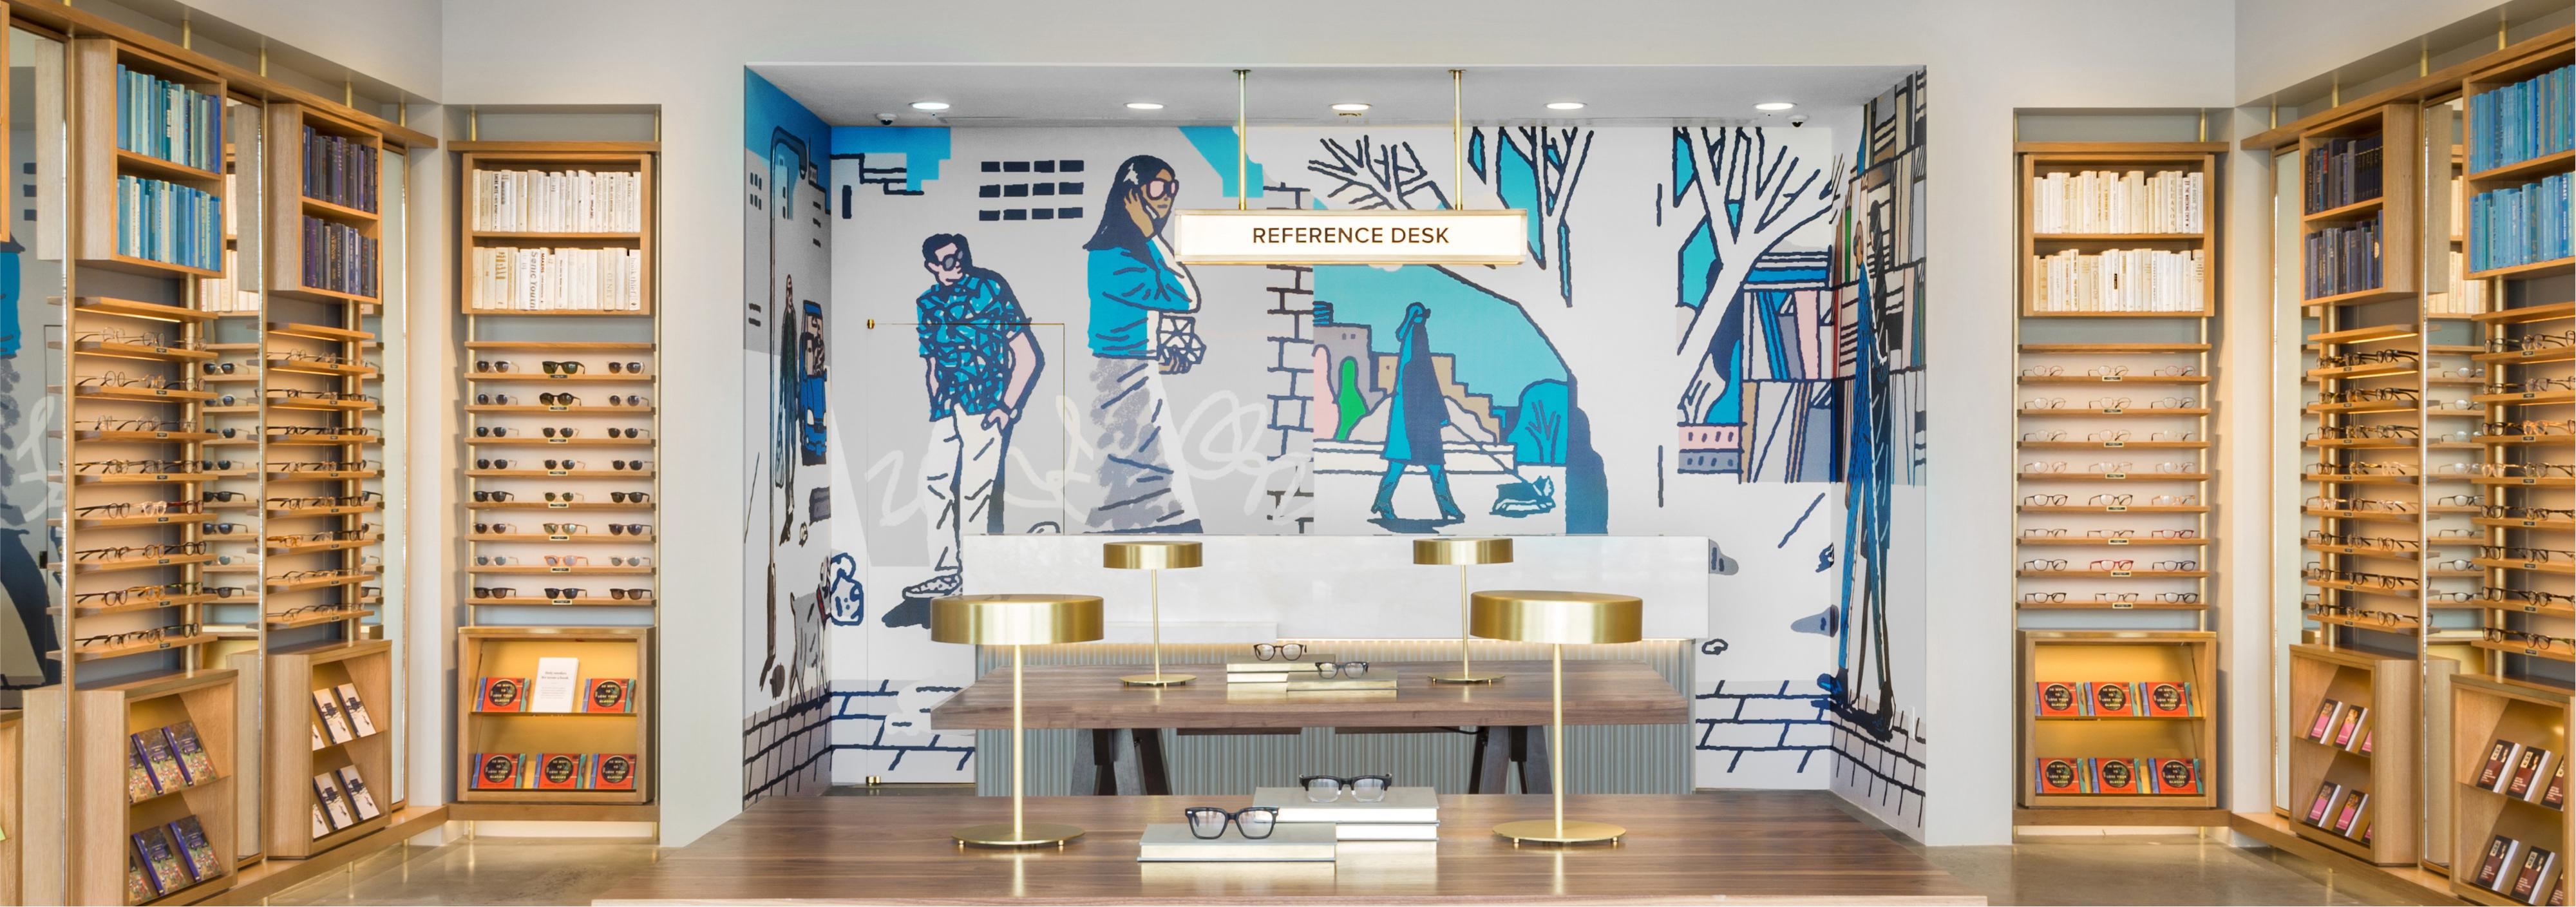 Westside Provisions | Warby Parker